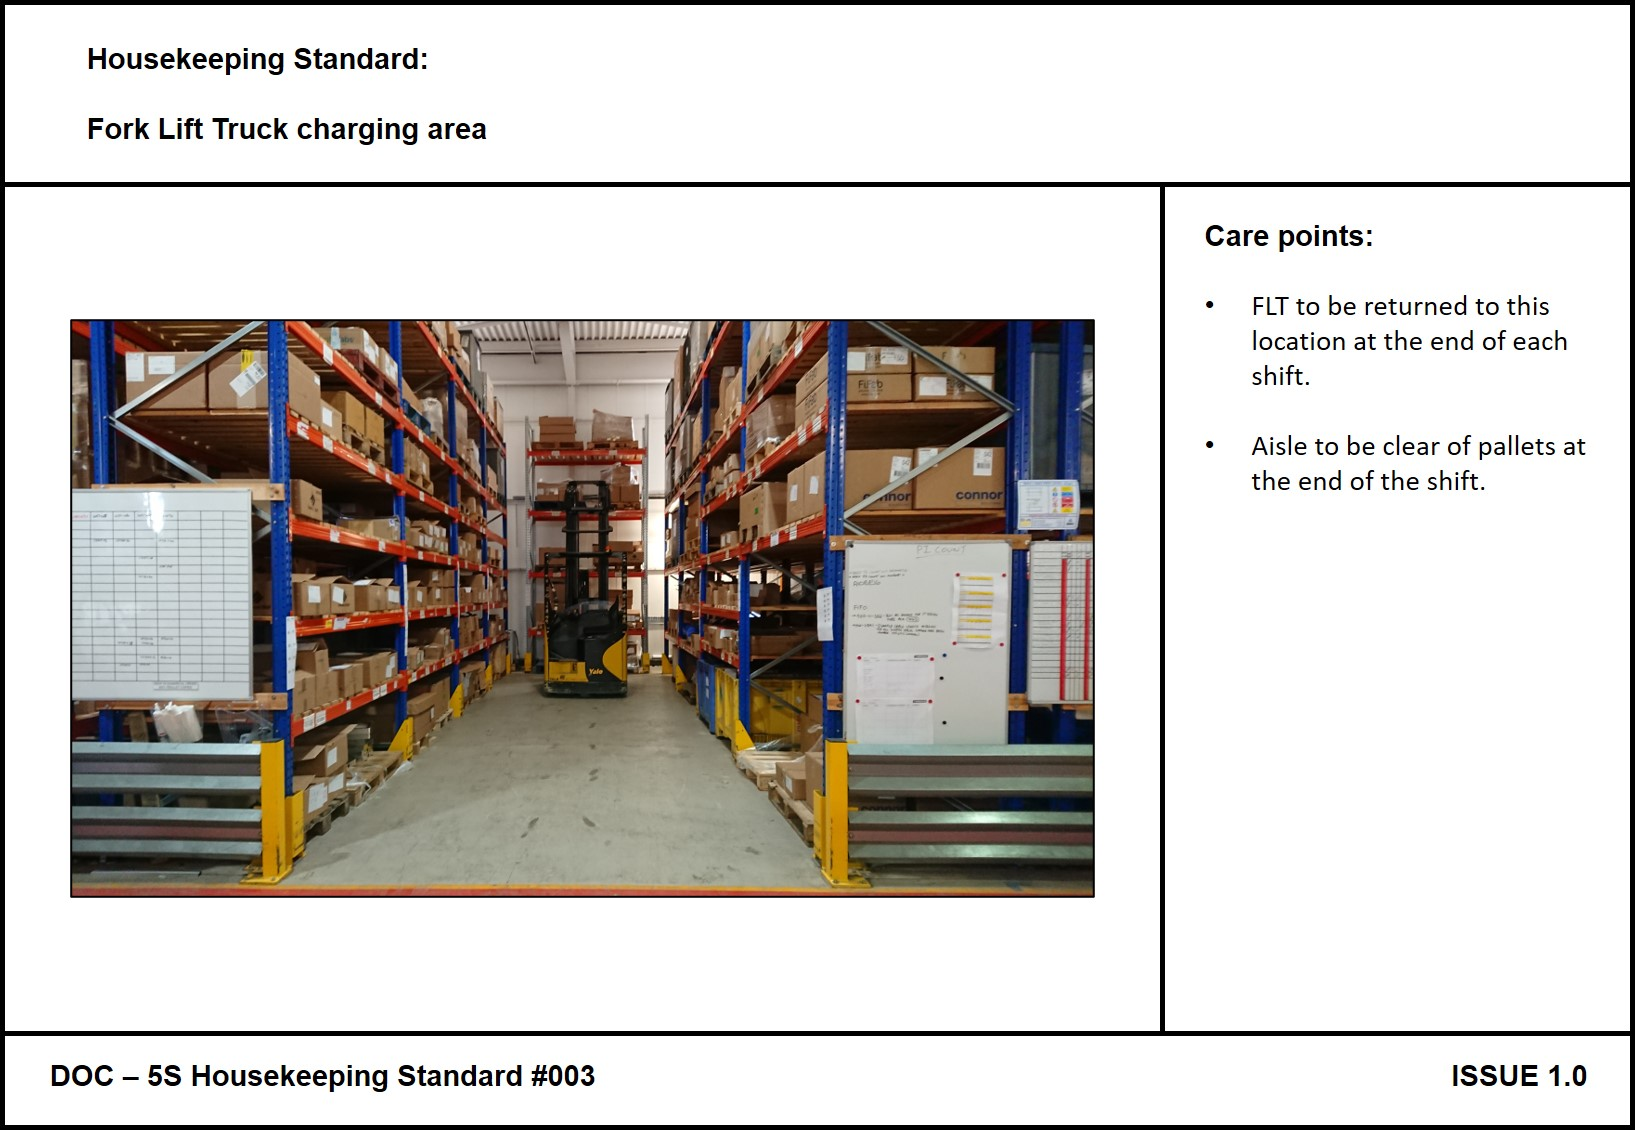 Strong OTIF performance and standards